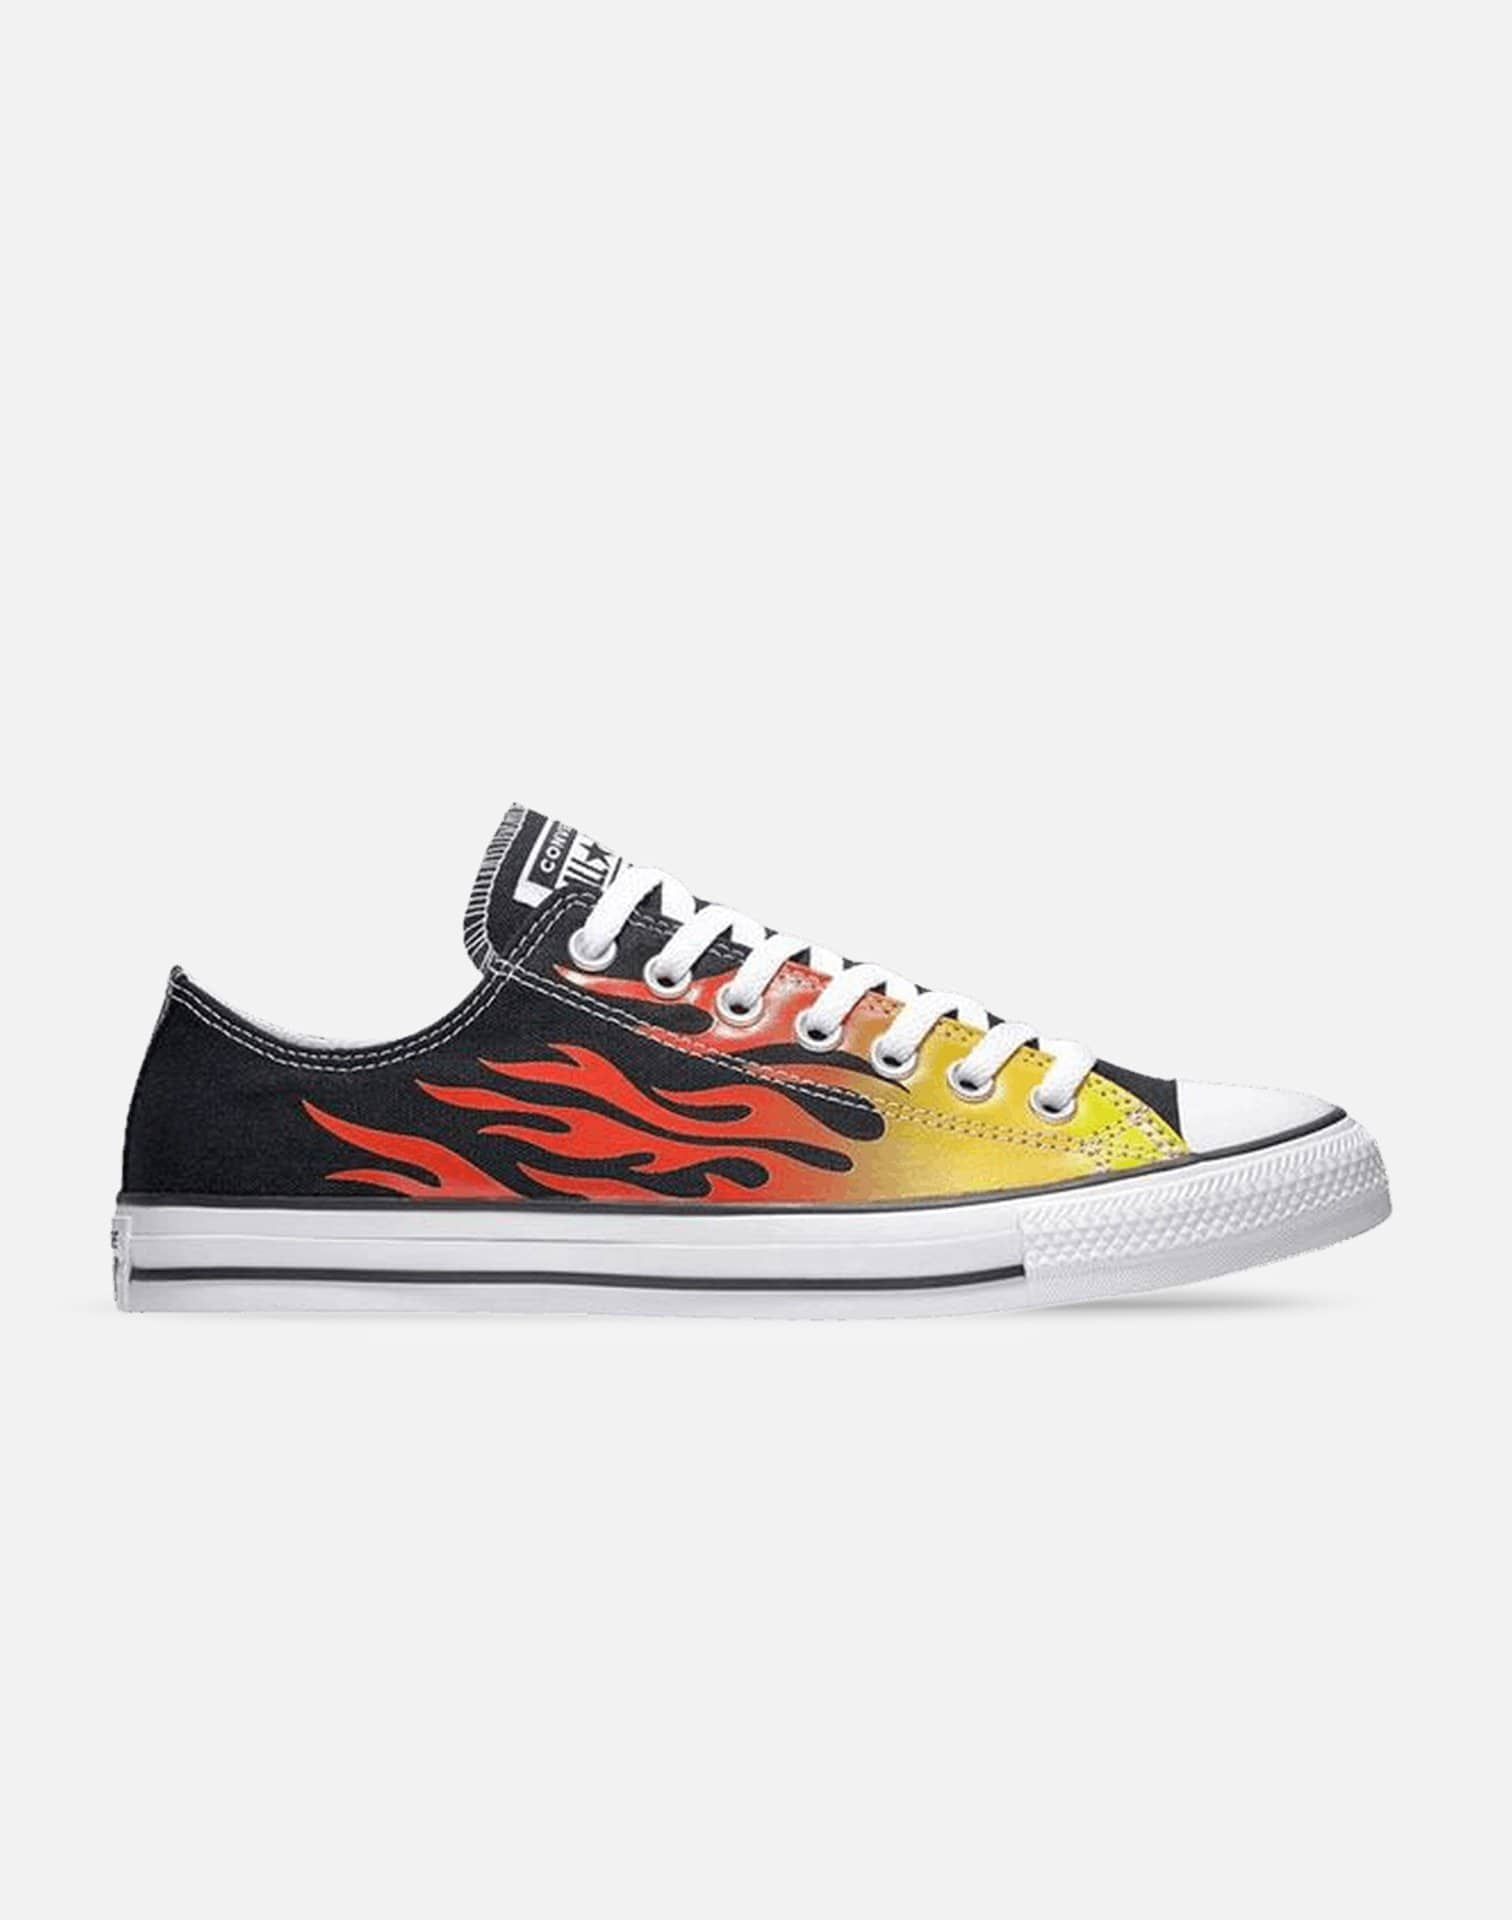 CHUCK TAYLOR ALL-STAR LOW ARCHIVE PRINT GRADE-SCHOOL